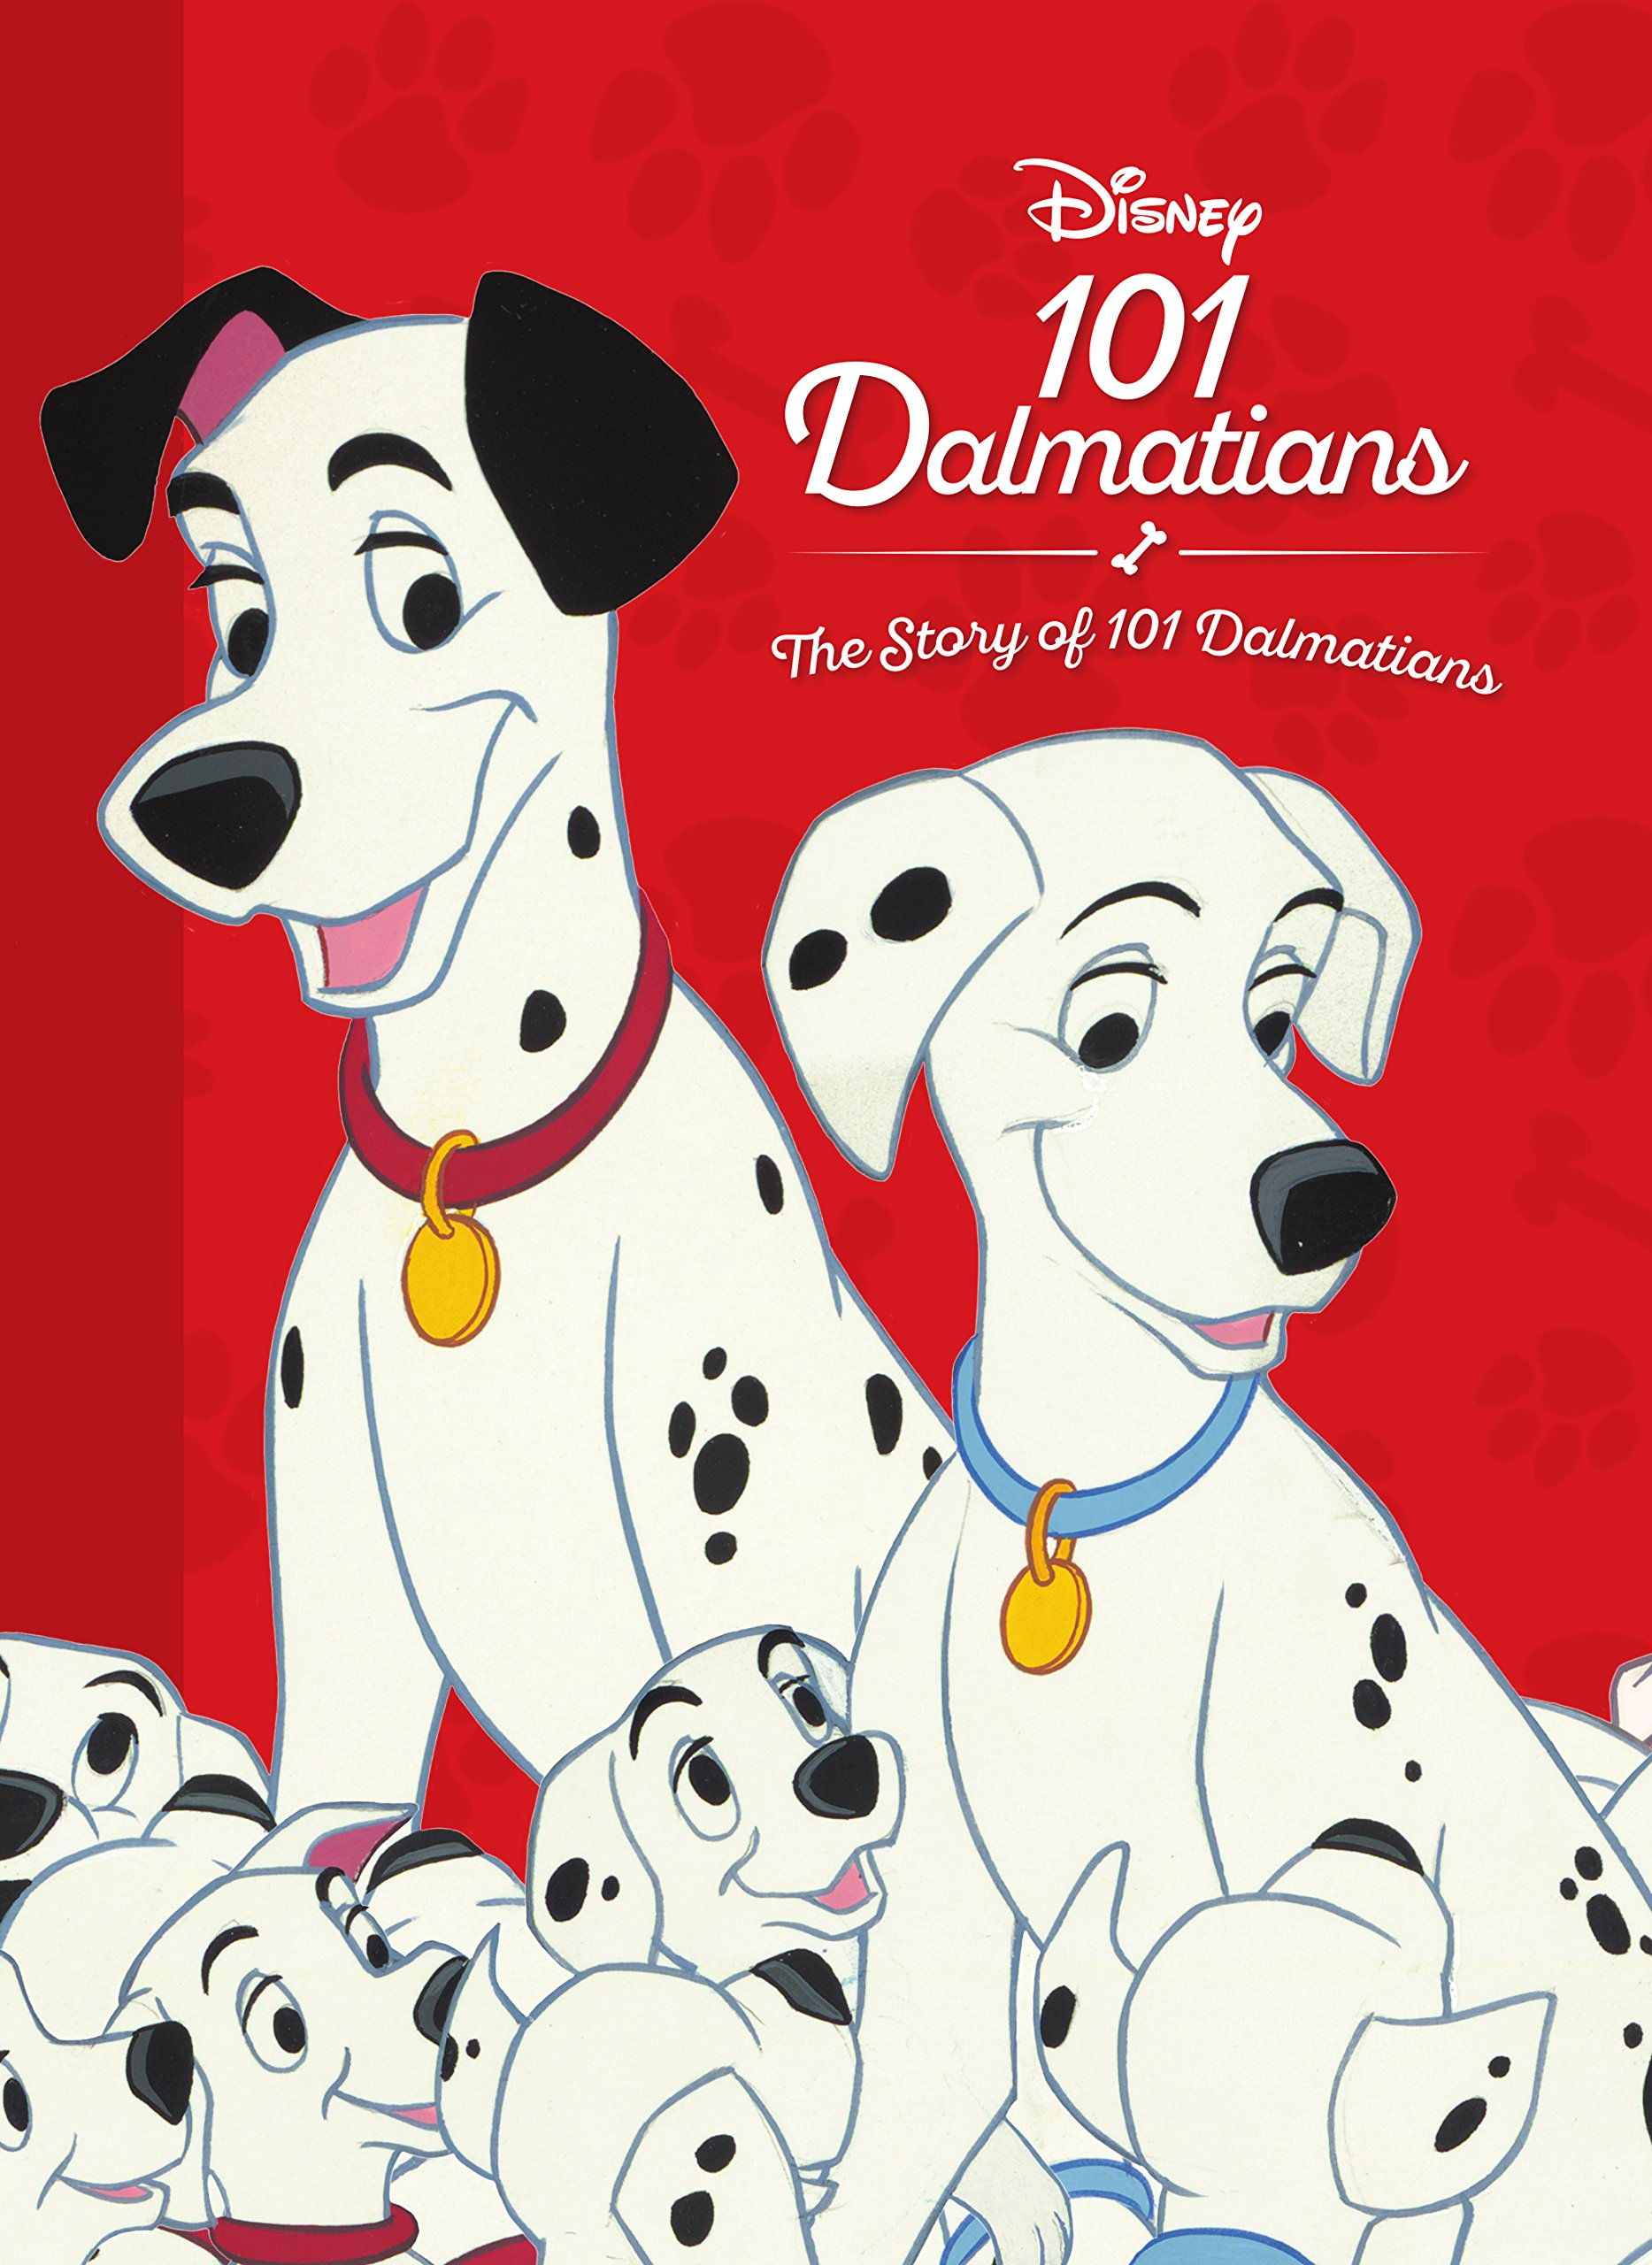 Disney 101 Dalmatians The Story of 101 Dalmatians Movie Collection